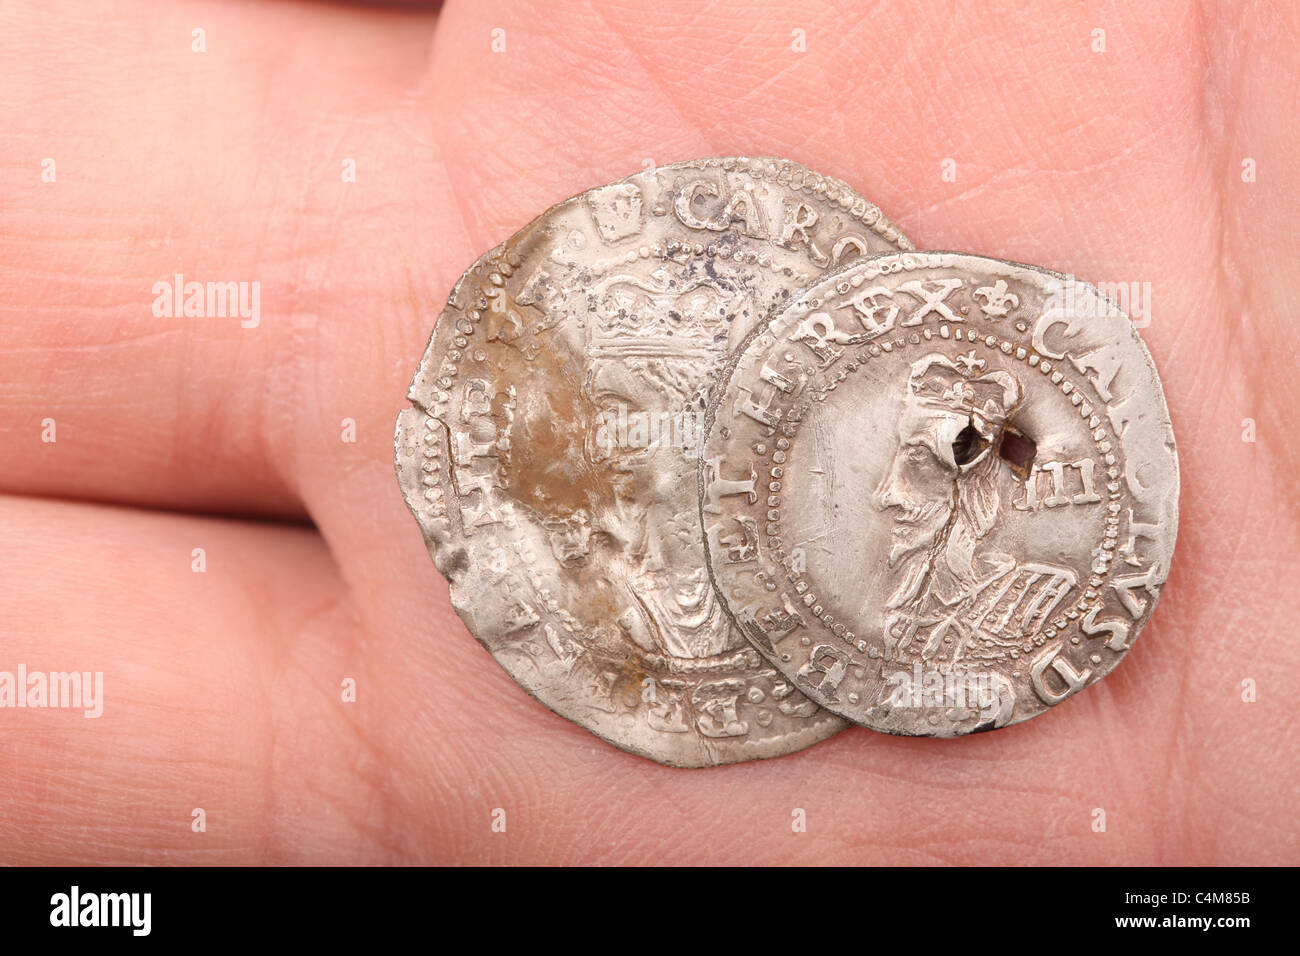 Charles 1st silver coins Threepence and Groat four pence found whilst metal detecting and declared as treasure - Stock Image